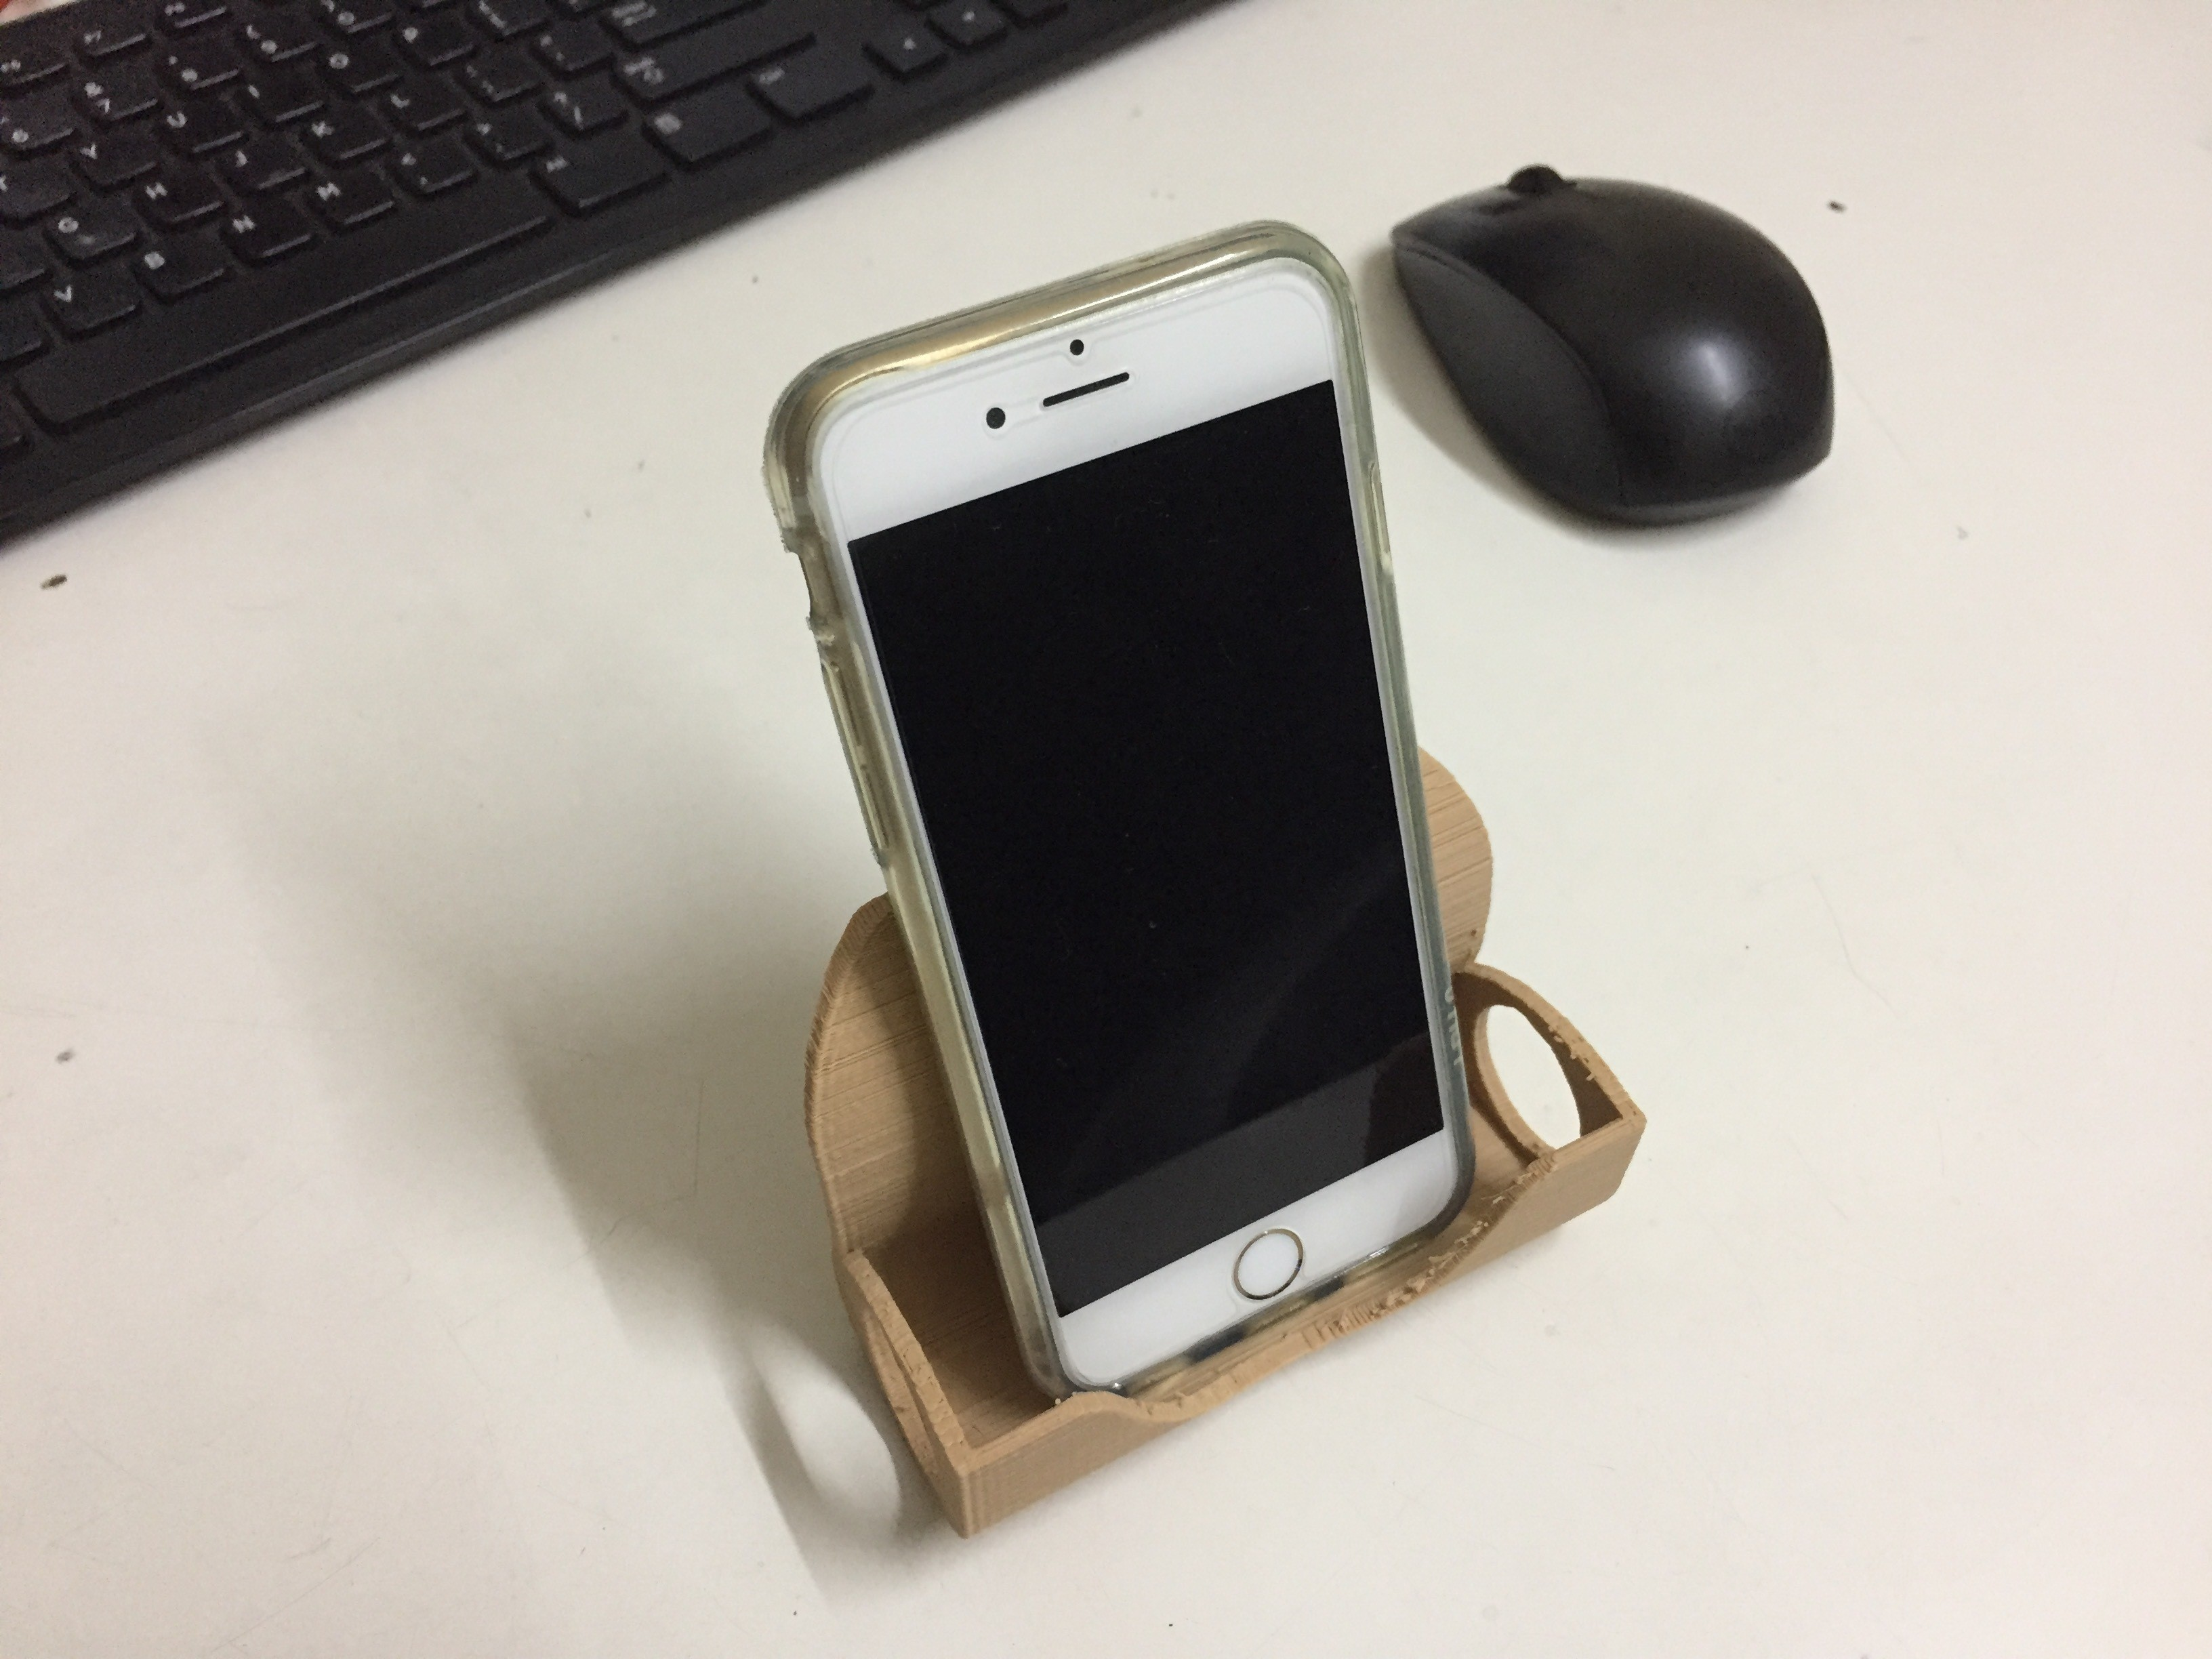 20171024_153206165_iOS.jpg Download free STL file Iphone Docking Station • 3D printer object, Brahmabeej